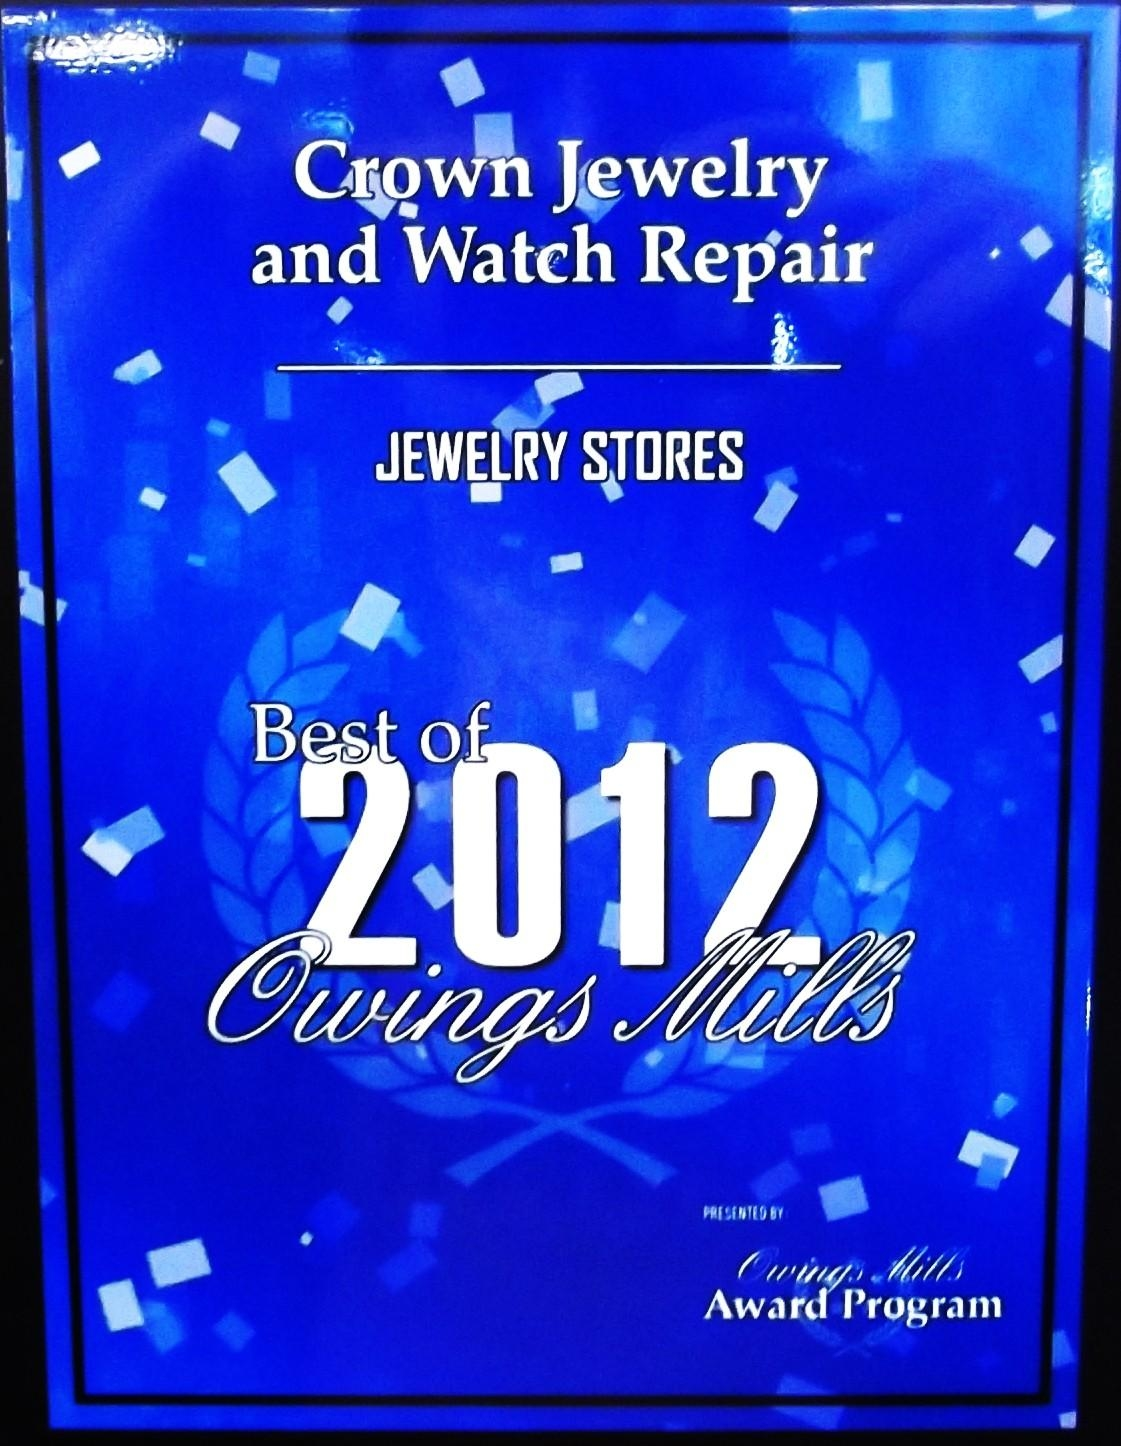 CROWN JEWELRY and WATCH REPAIRS